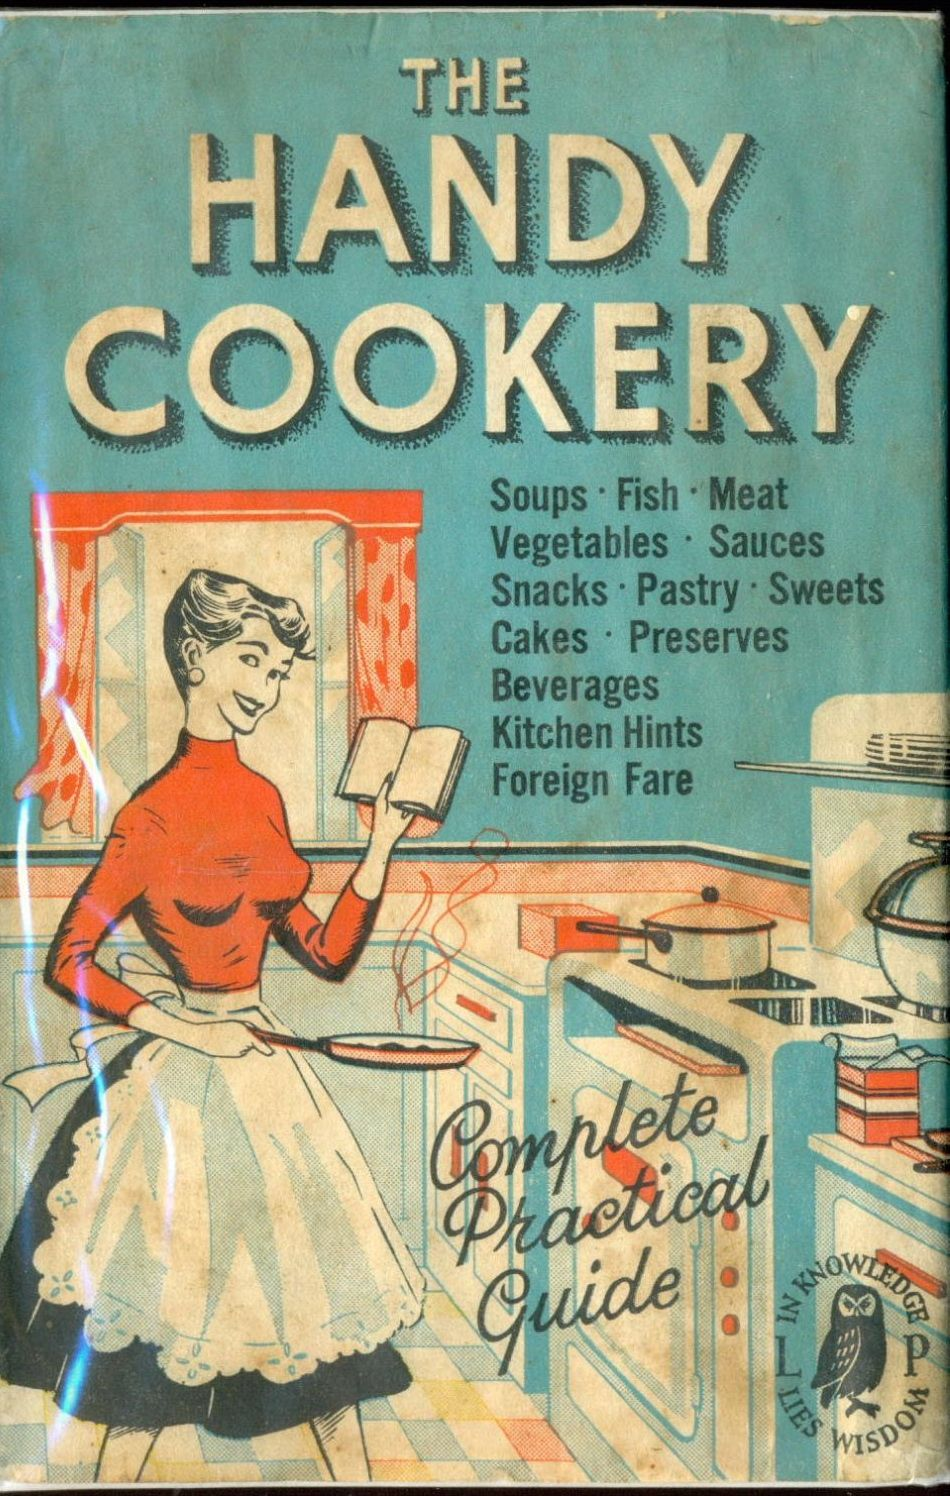 Vintage Cookbook Covers : The handy cookery vintage cookbooks from s